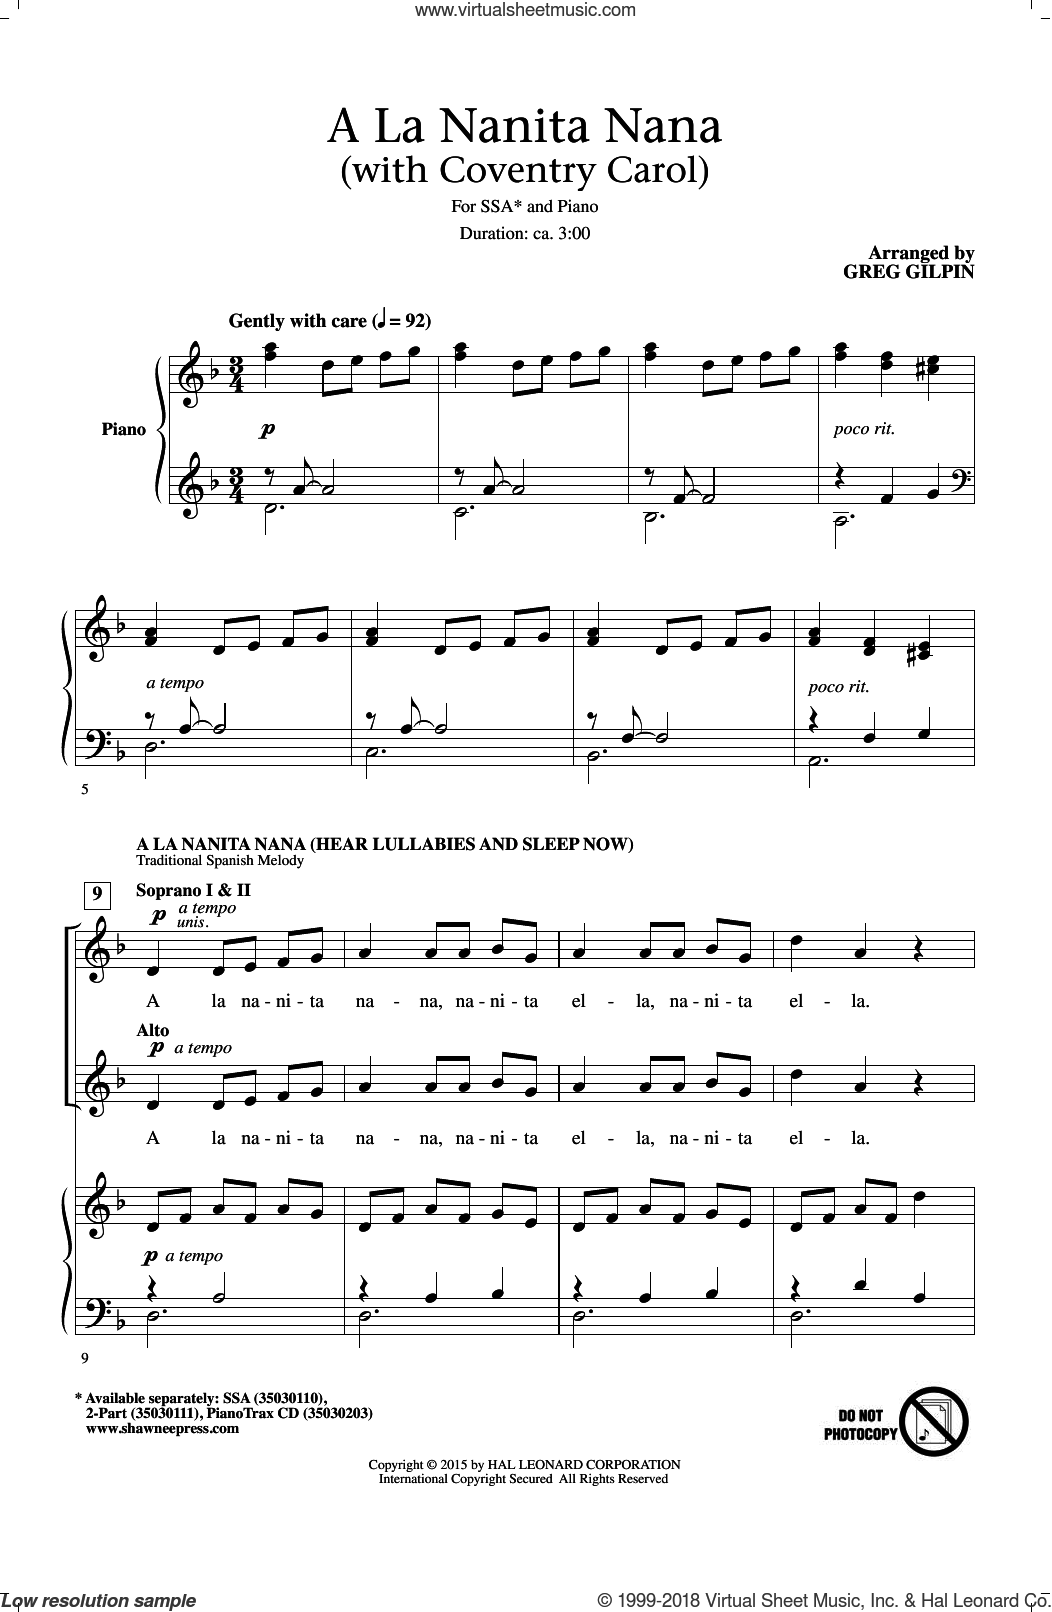 A La Nanita Nana (Hear Lullabies And Sleep Now) sheet music for choir and piano (SSA) by Greg Gilpin. Score Image Preview.